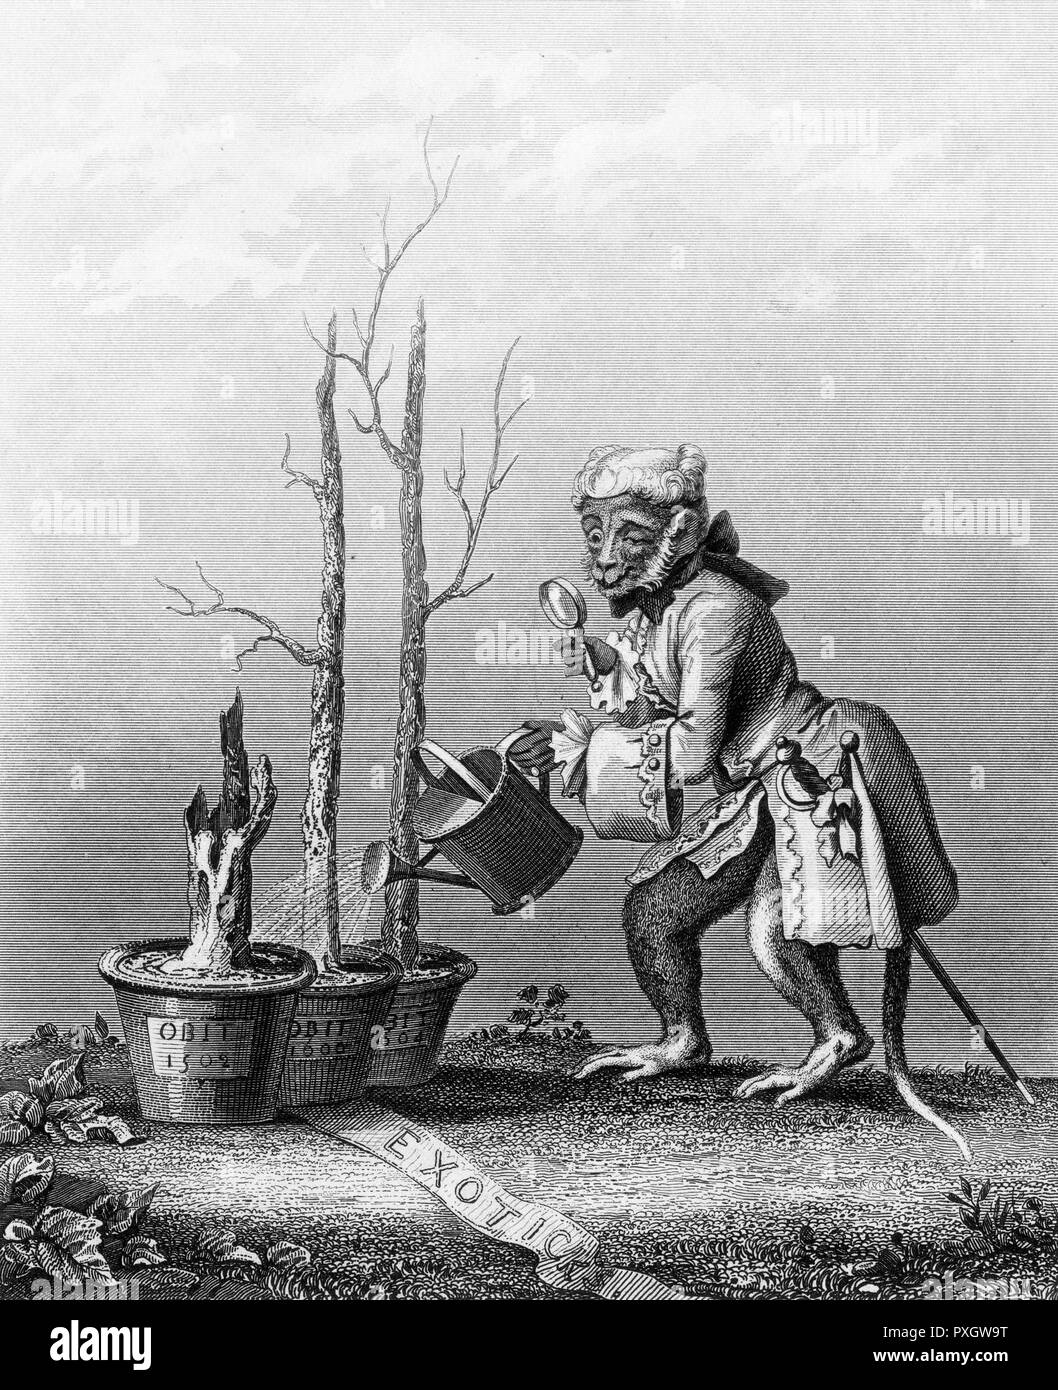 Whereas English artistic saplings thrive, foreign art ('exoticks'), watered by a monkey connoisseur, are stunted trunnks, dead beyond revival.     Date: 1764 - Stock Image